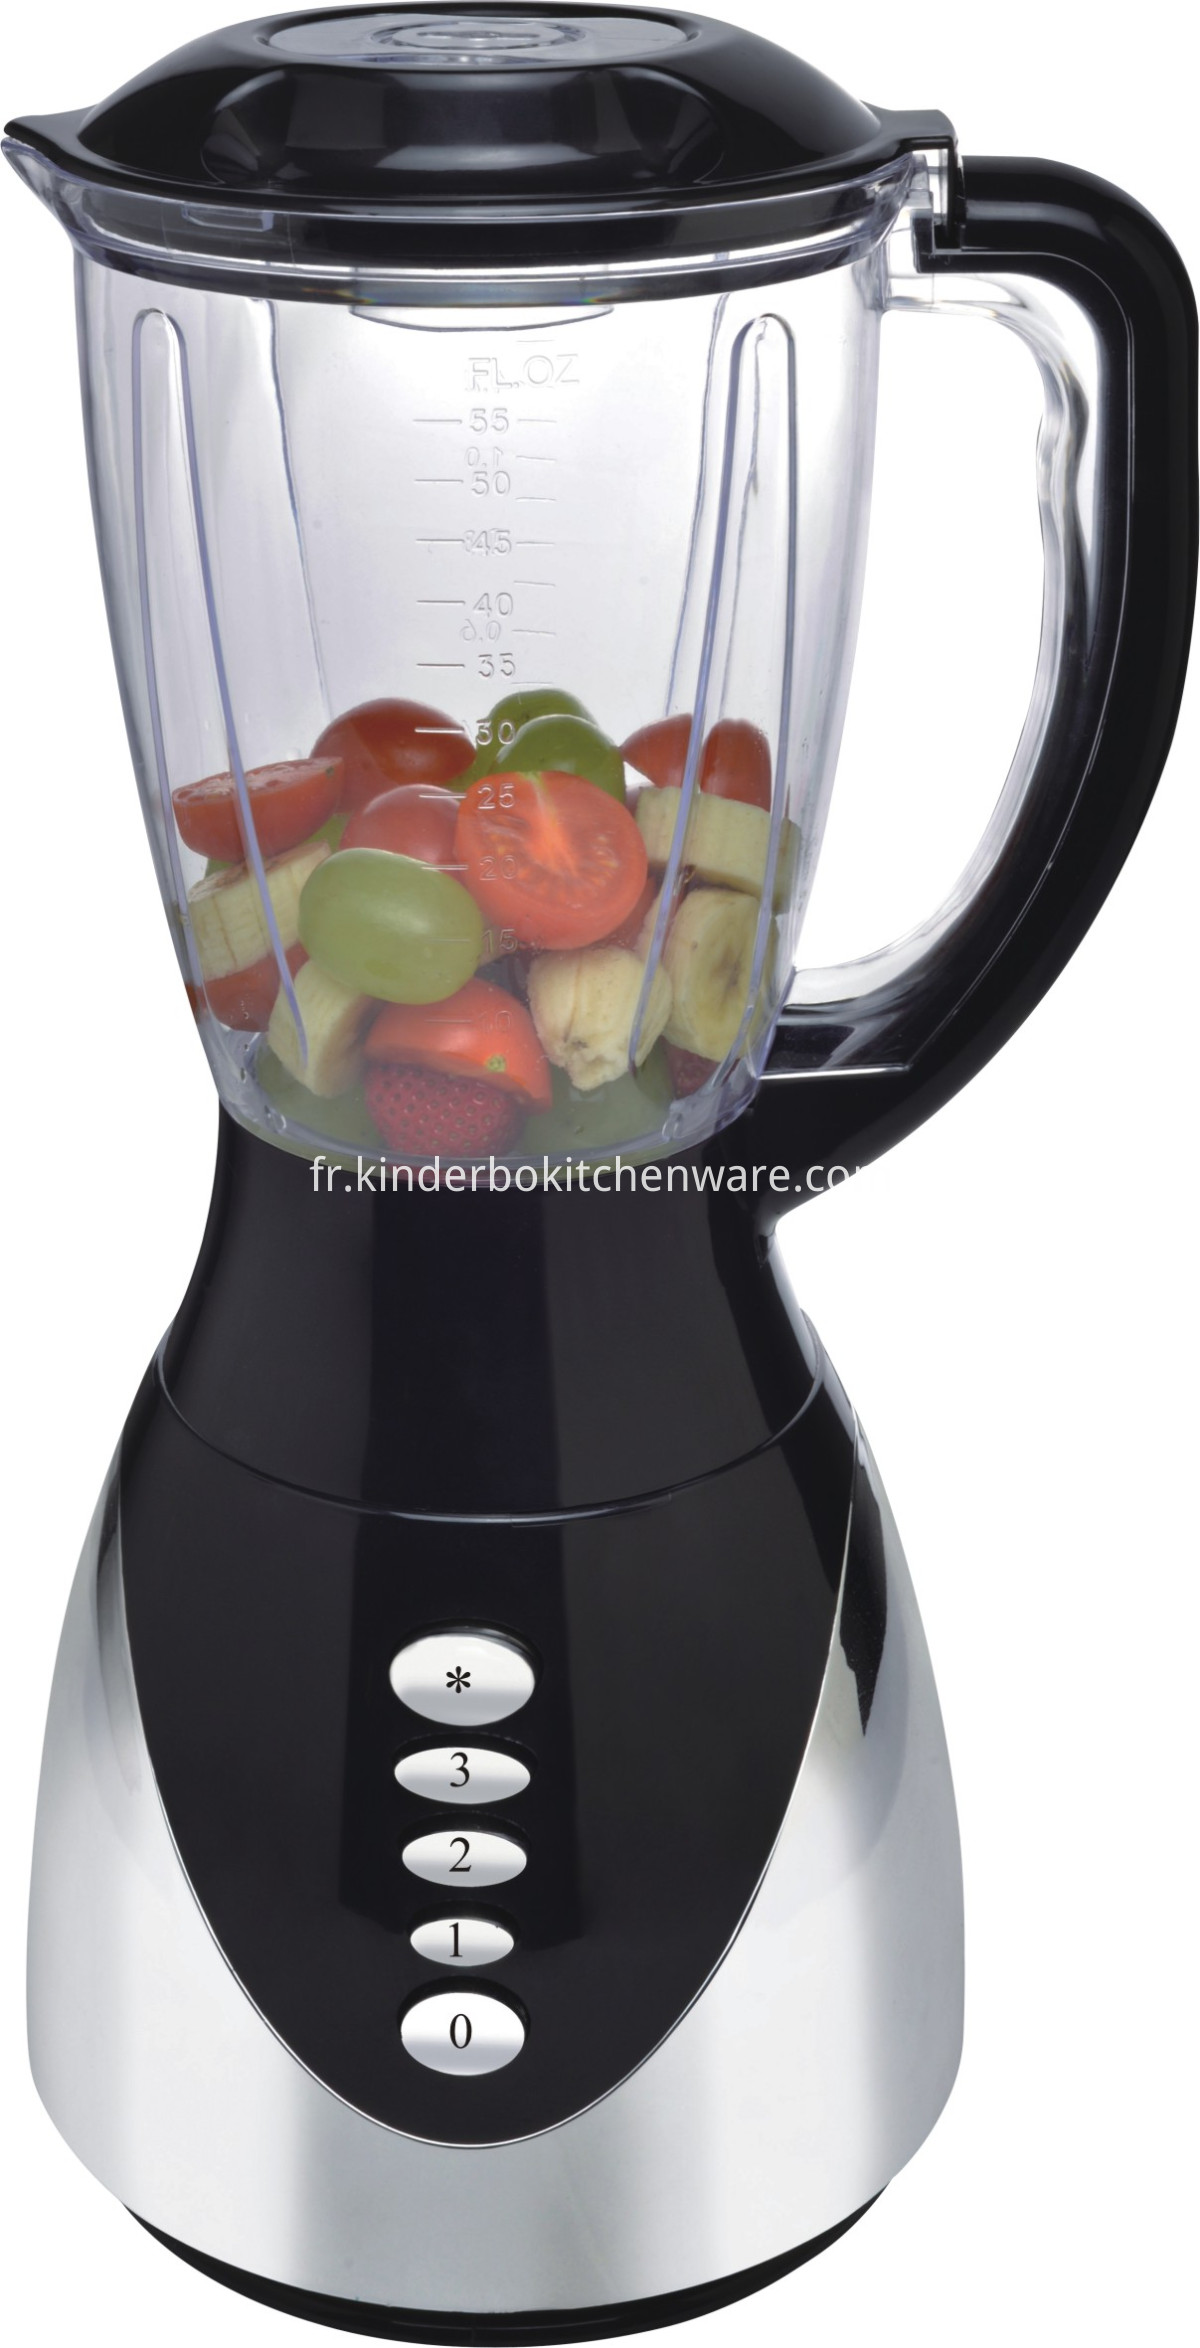 1.5L plastic juicer blender